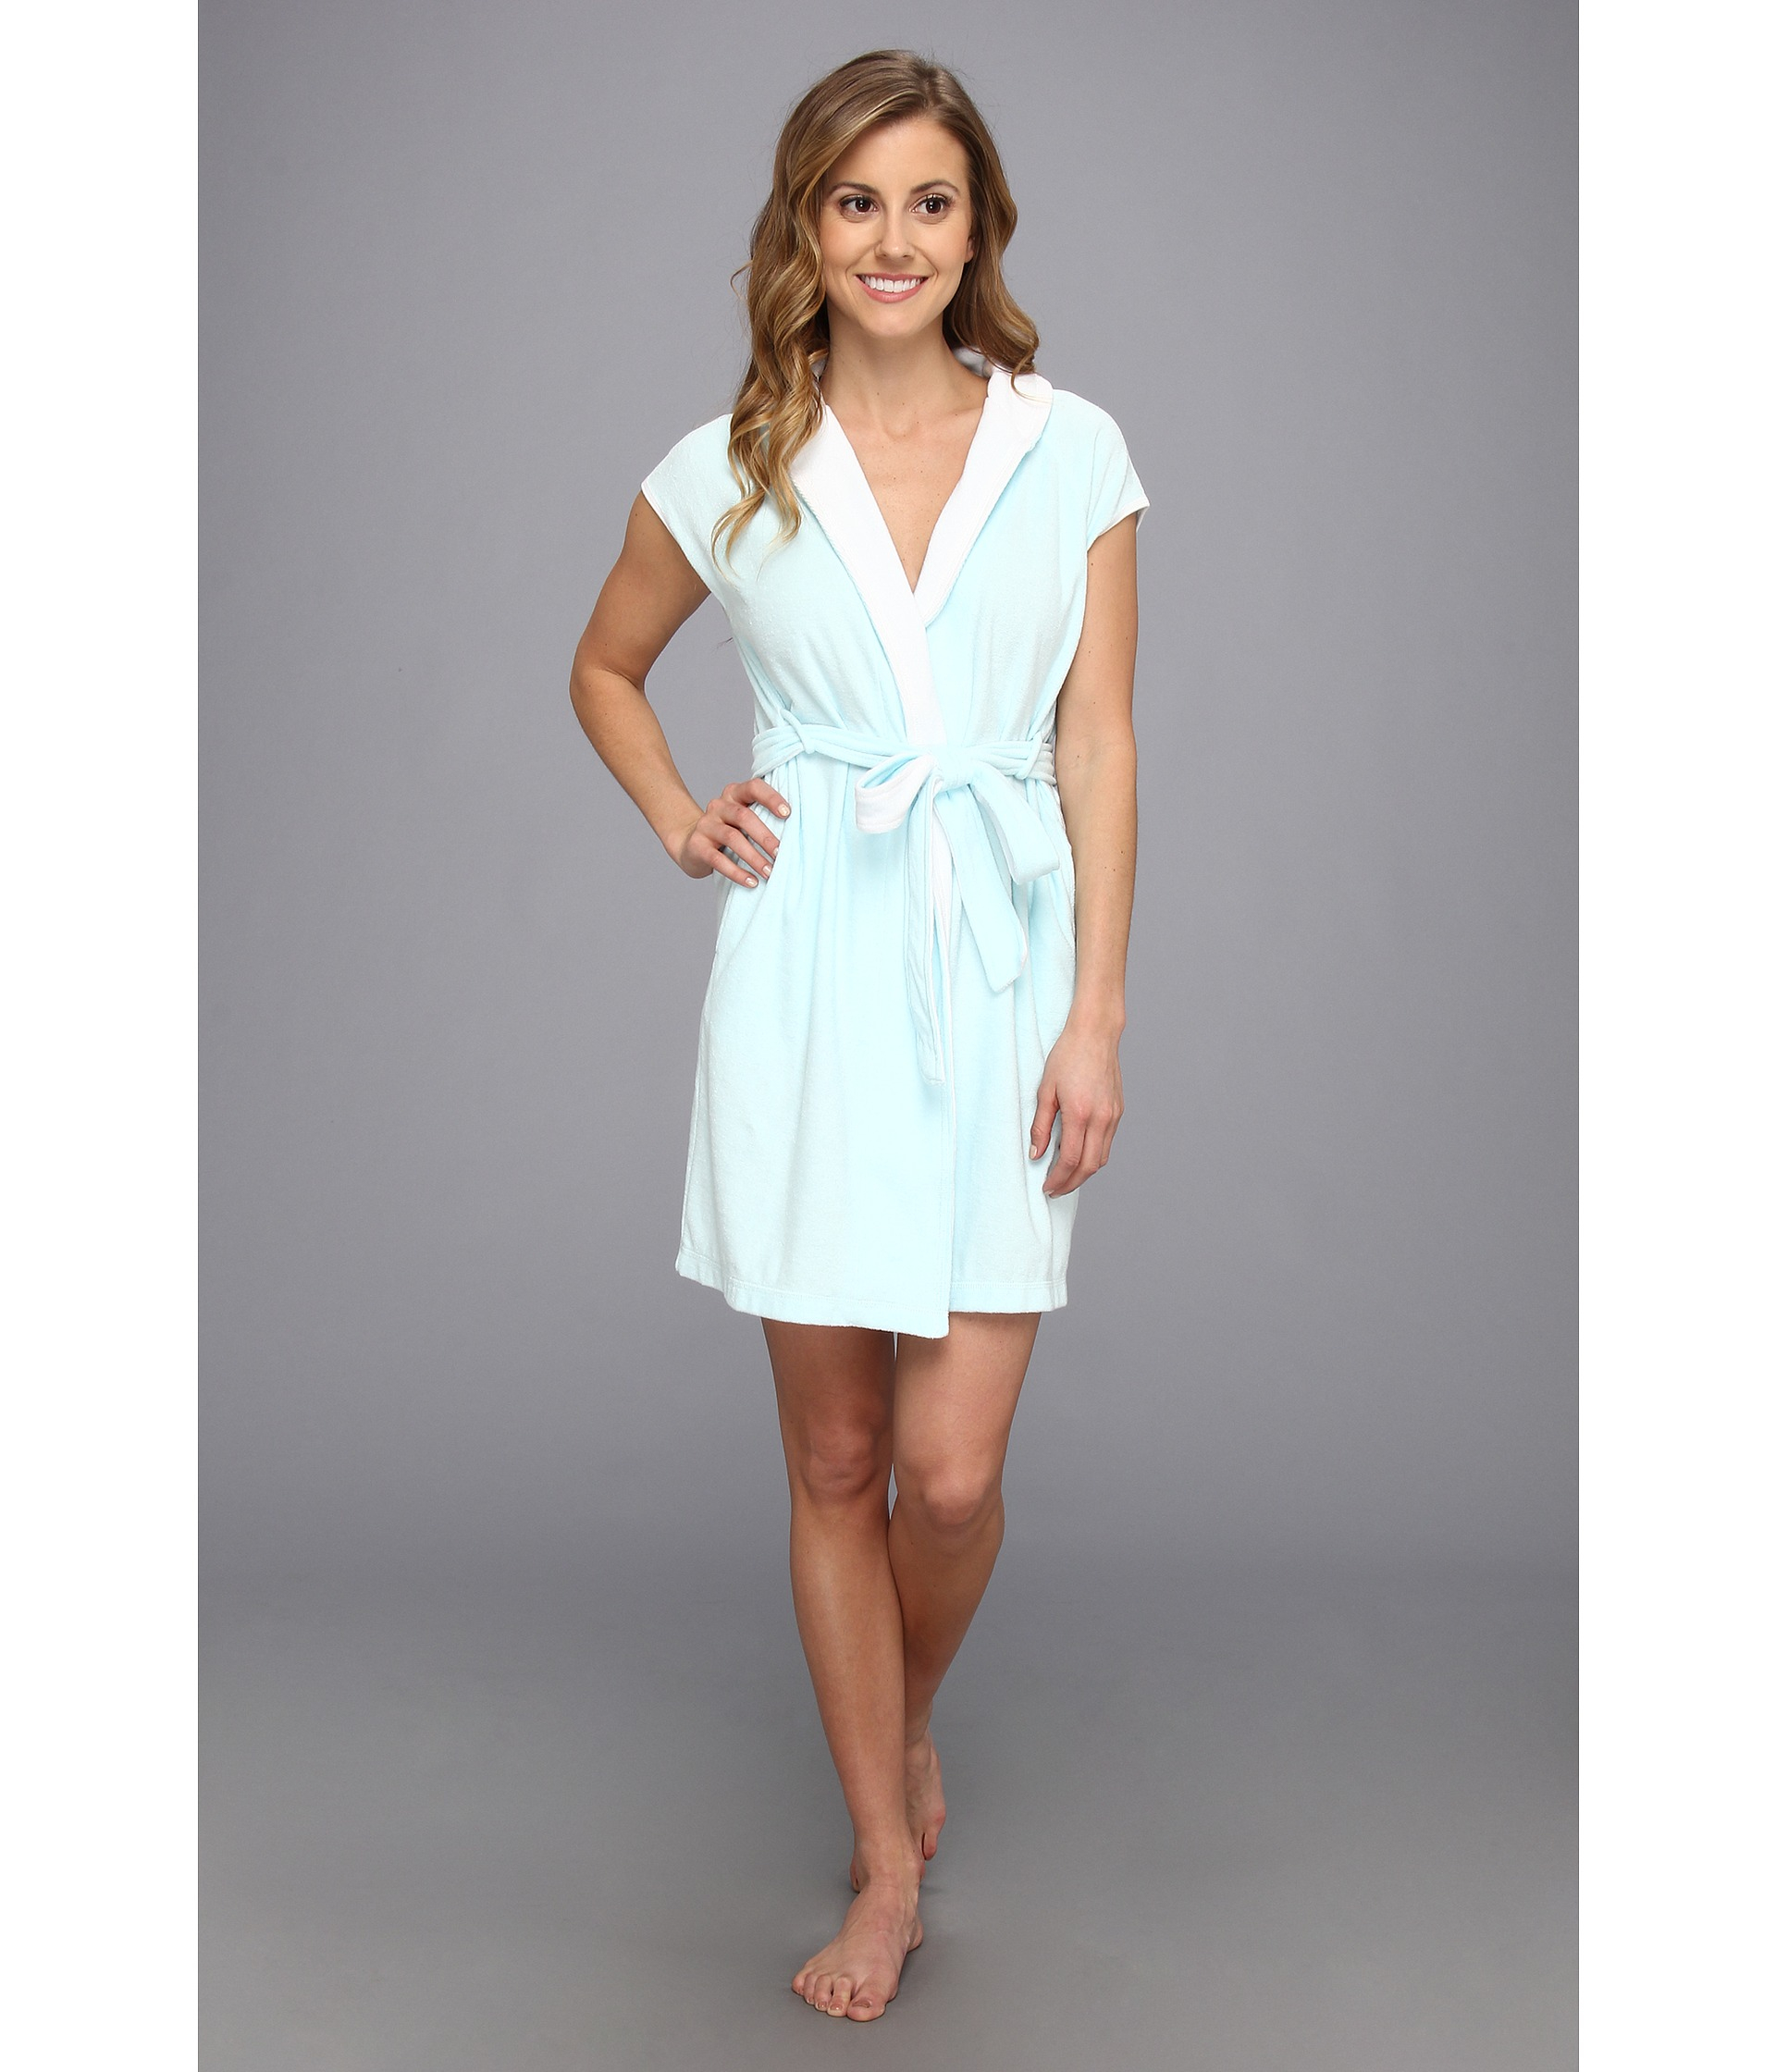 Lyst - Betsey Johnson Baby Terry Wifey Bridal Robe in Blue 460d6a2f8